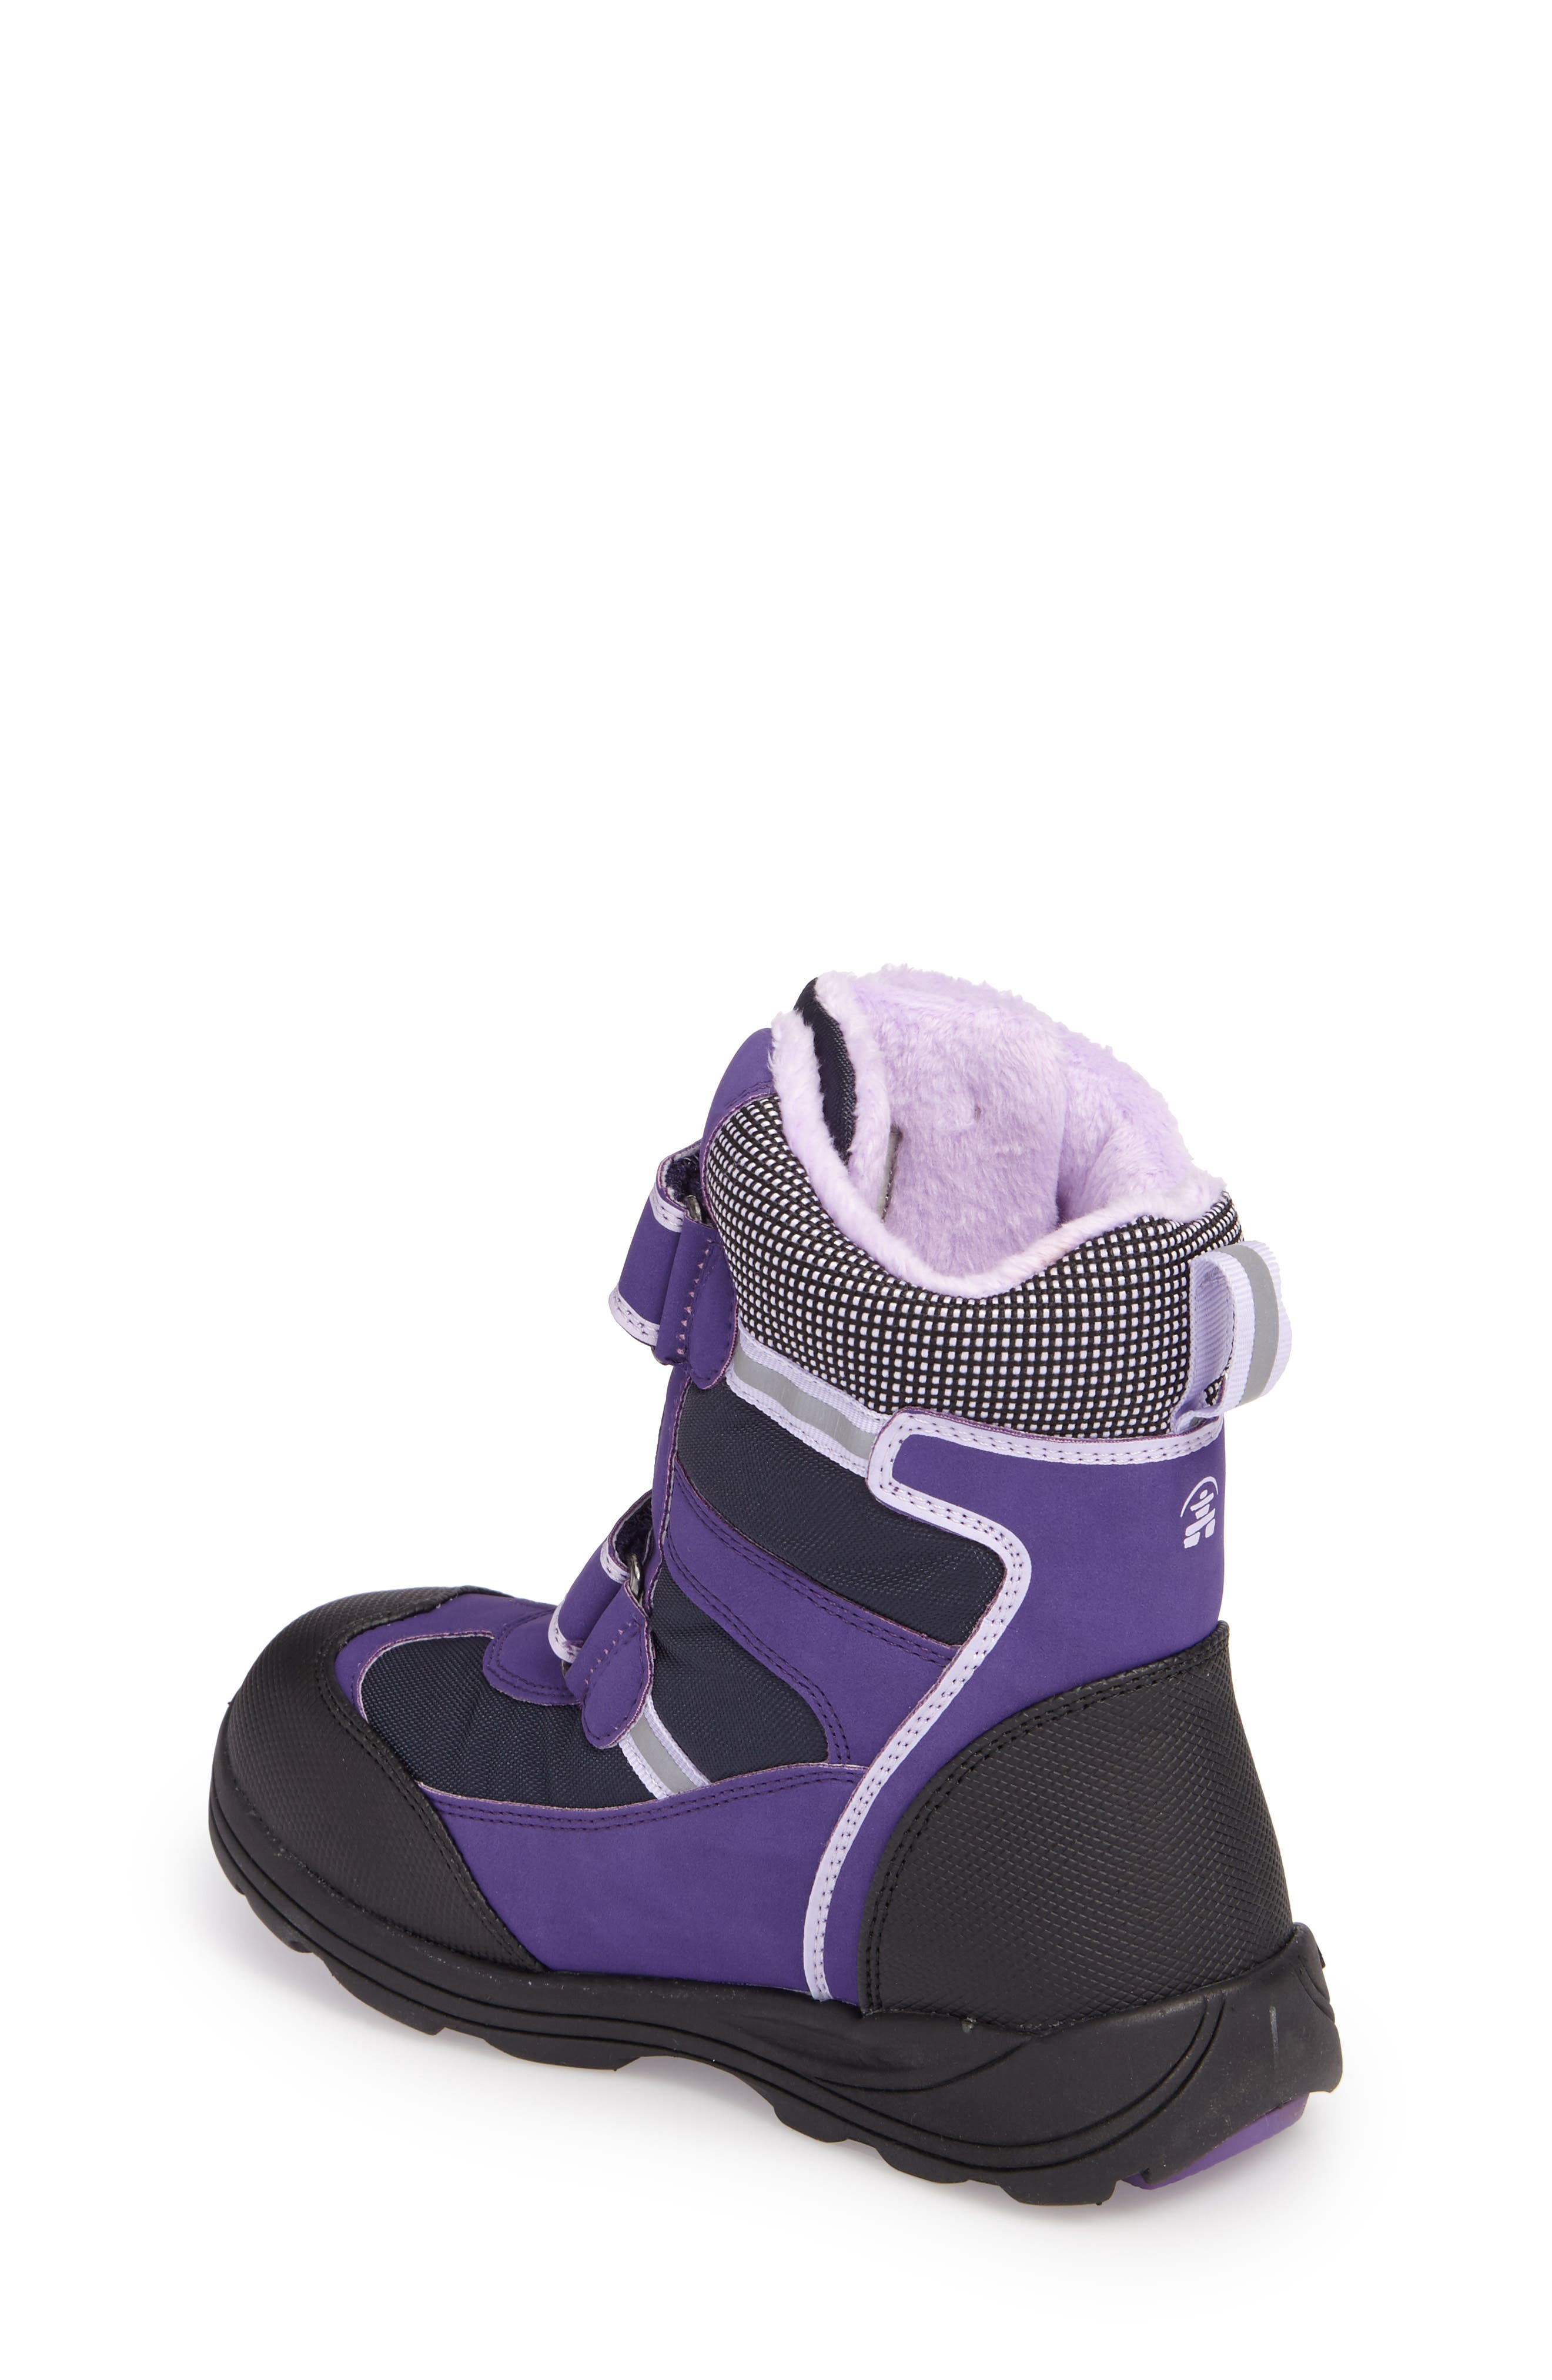 Alternate Image 2  - Kamik Slate Snow Boot (Toddler, Little Kid & Big Kid)